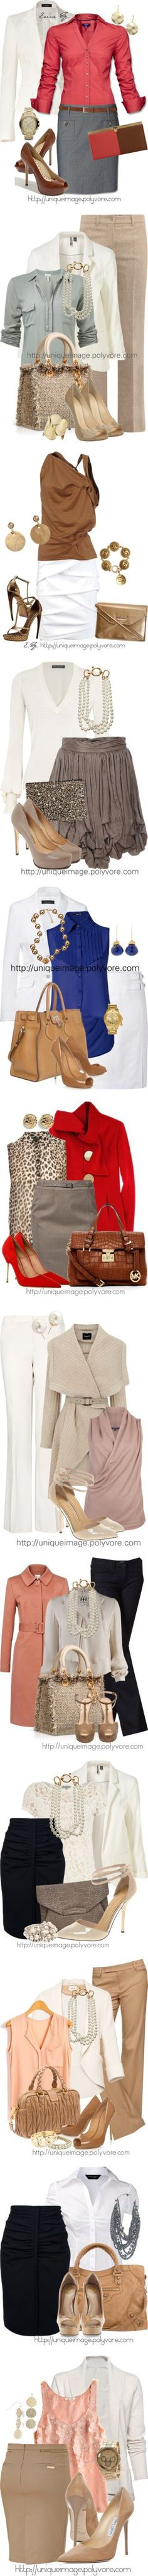 Simple classy work outfits